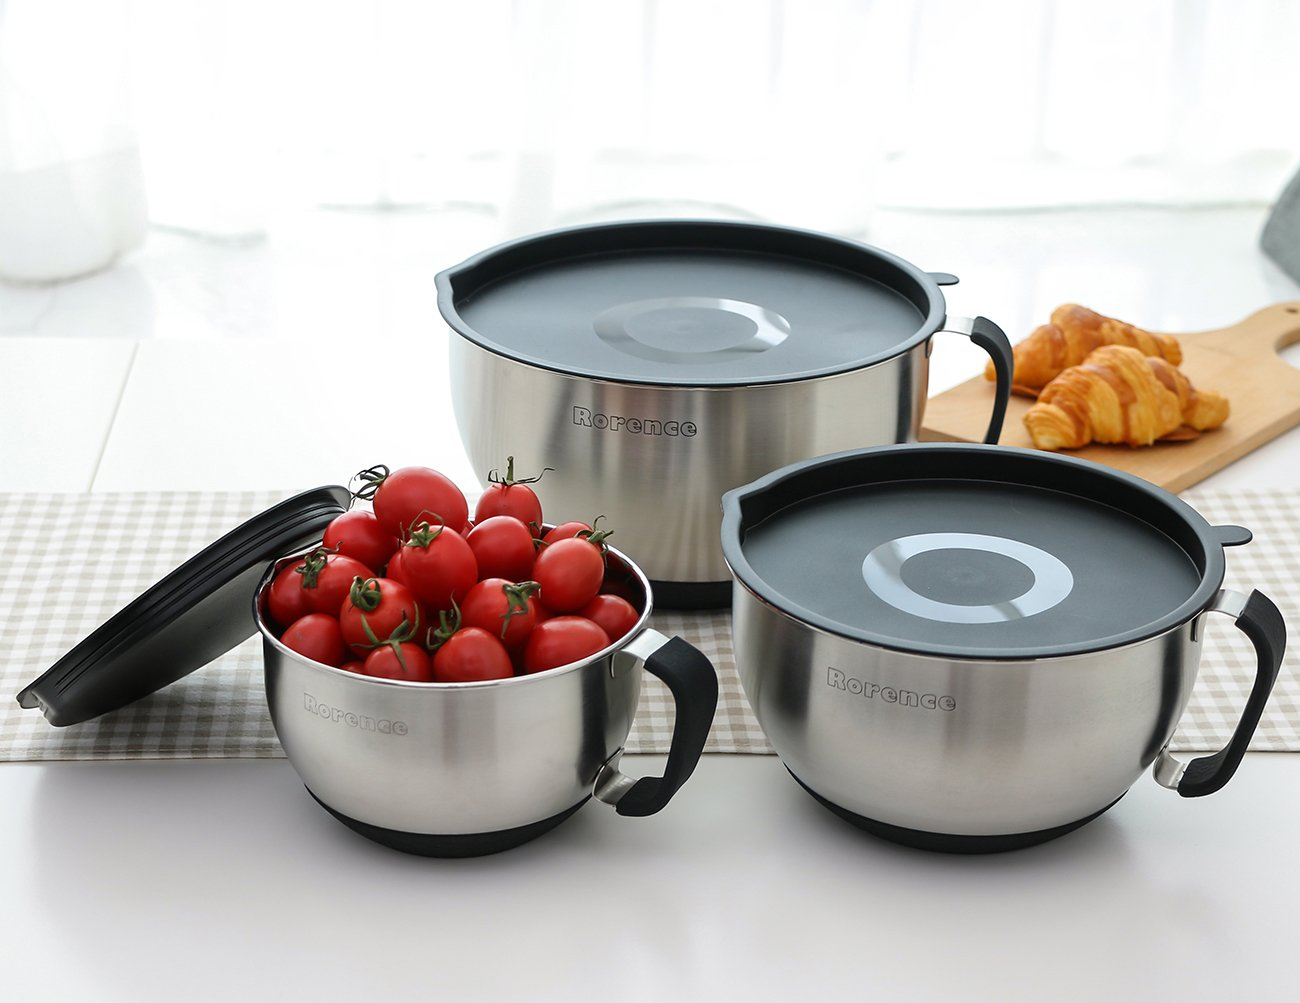 Black Rorence Stainless Steel Non-skid Mixing Bowls Set of 3 With Transparent Lids